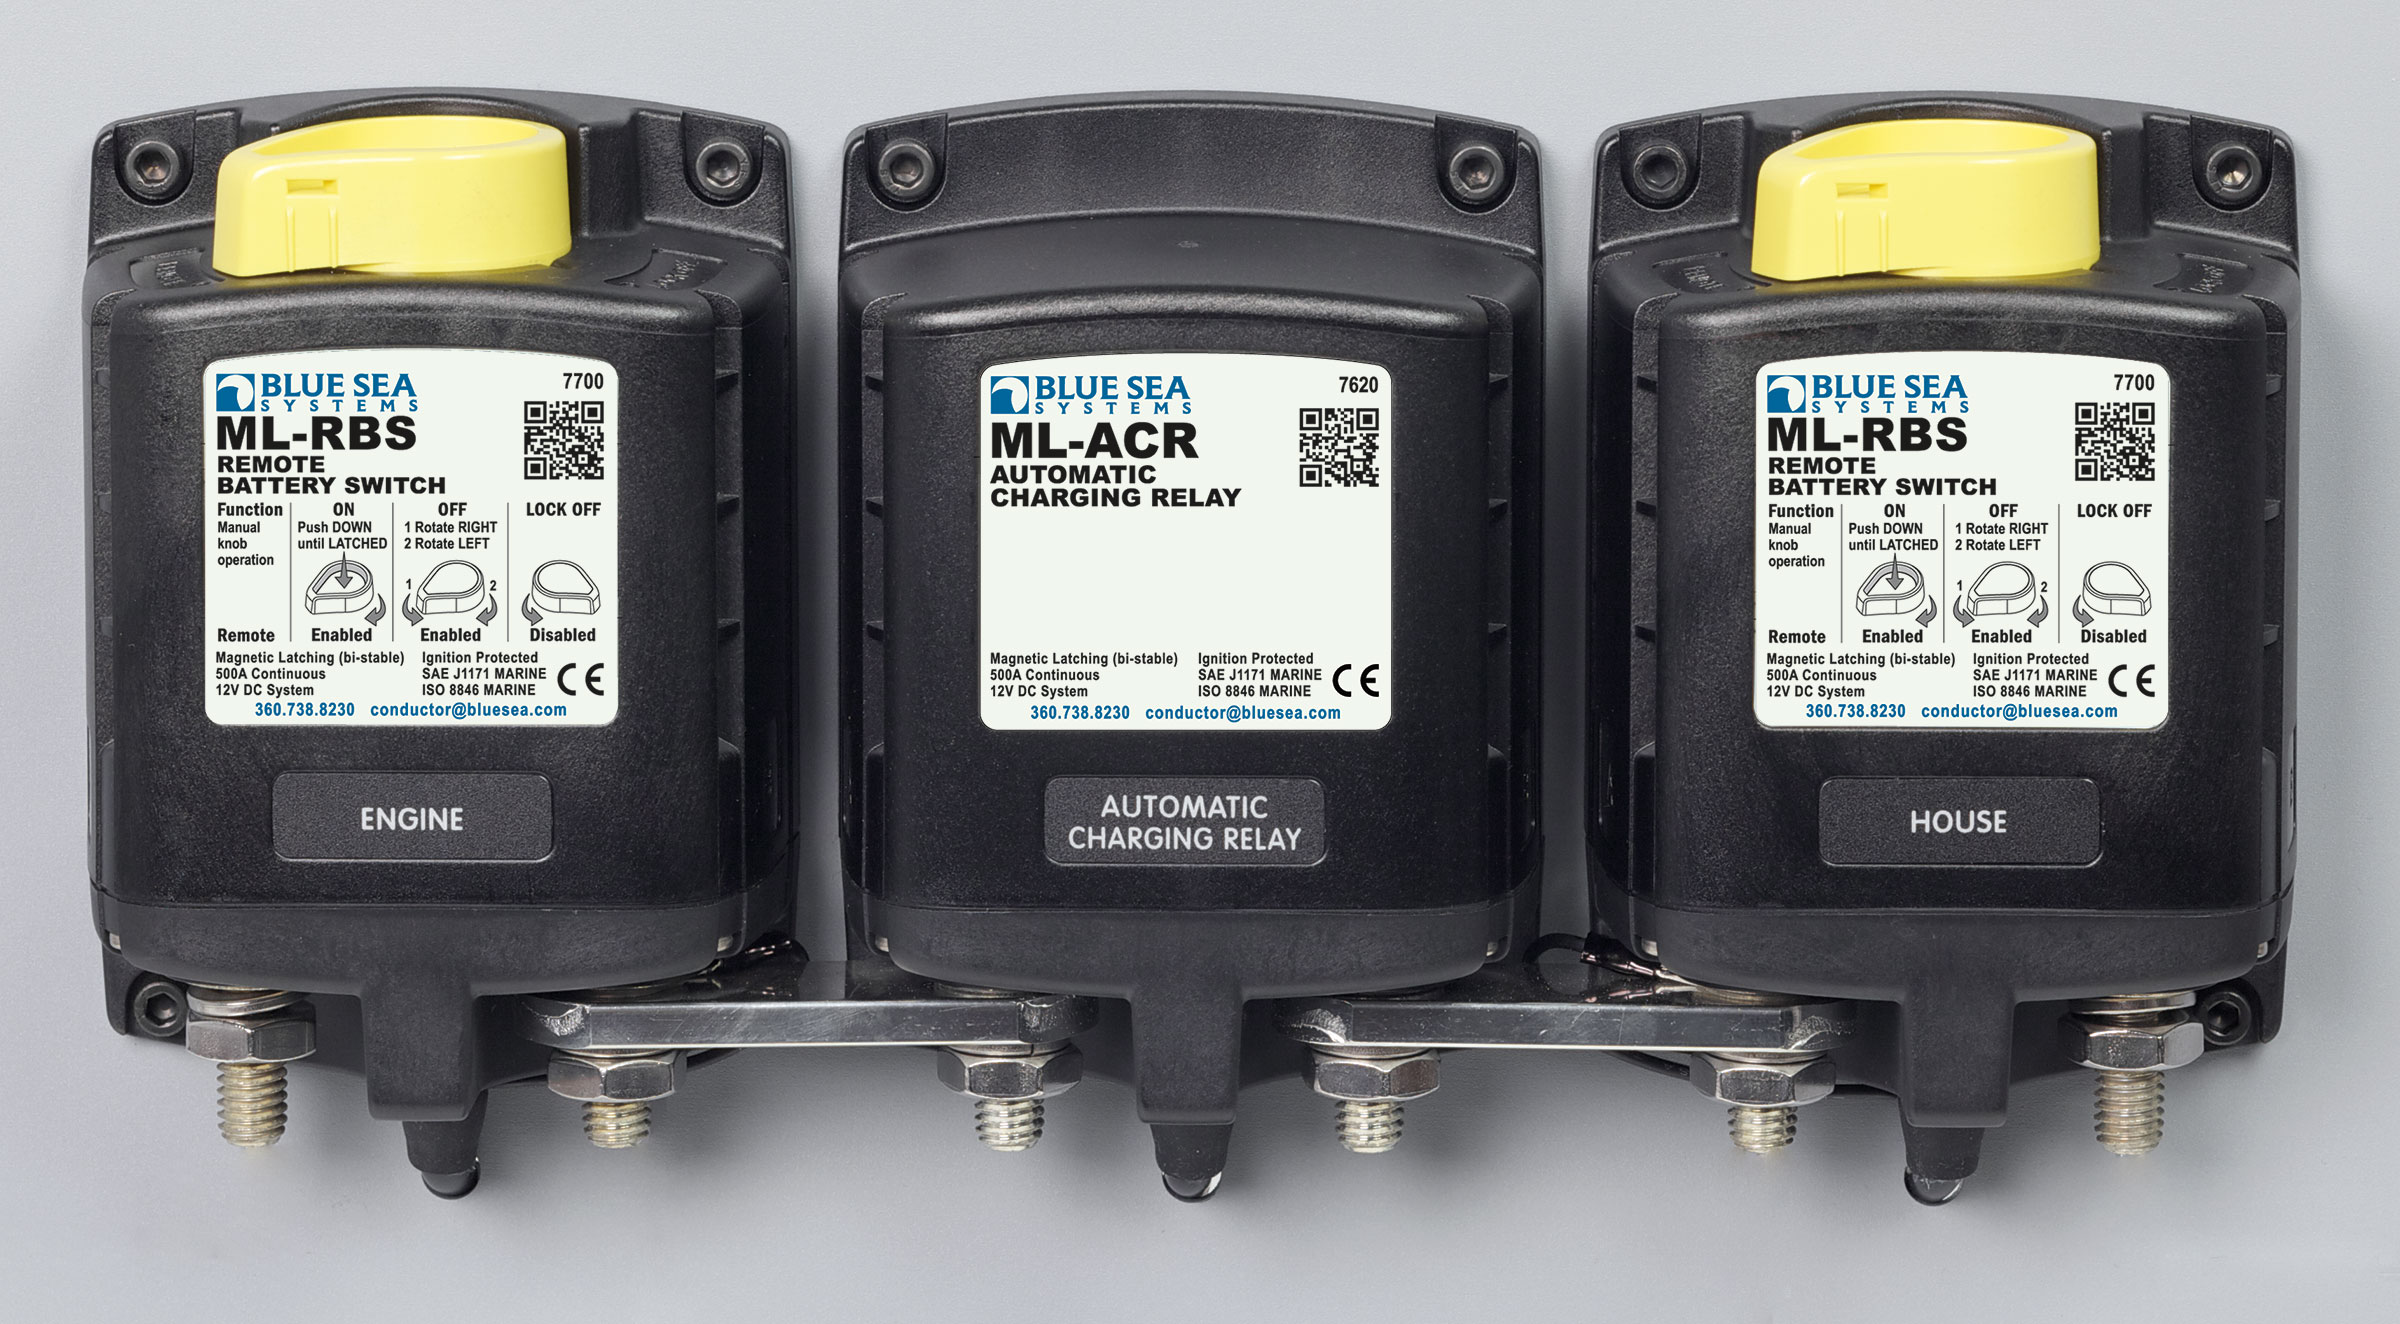 ML-ACR Automatic Charging Relay with Manual Control - 24V DC 500A - Blue Sea  Systems